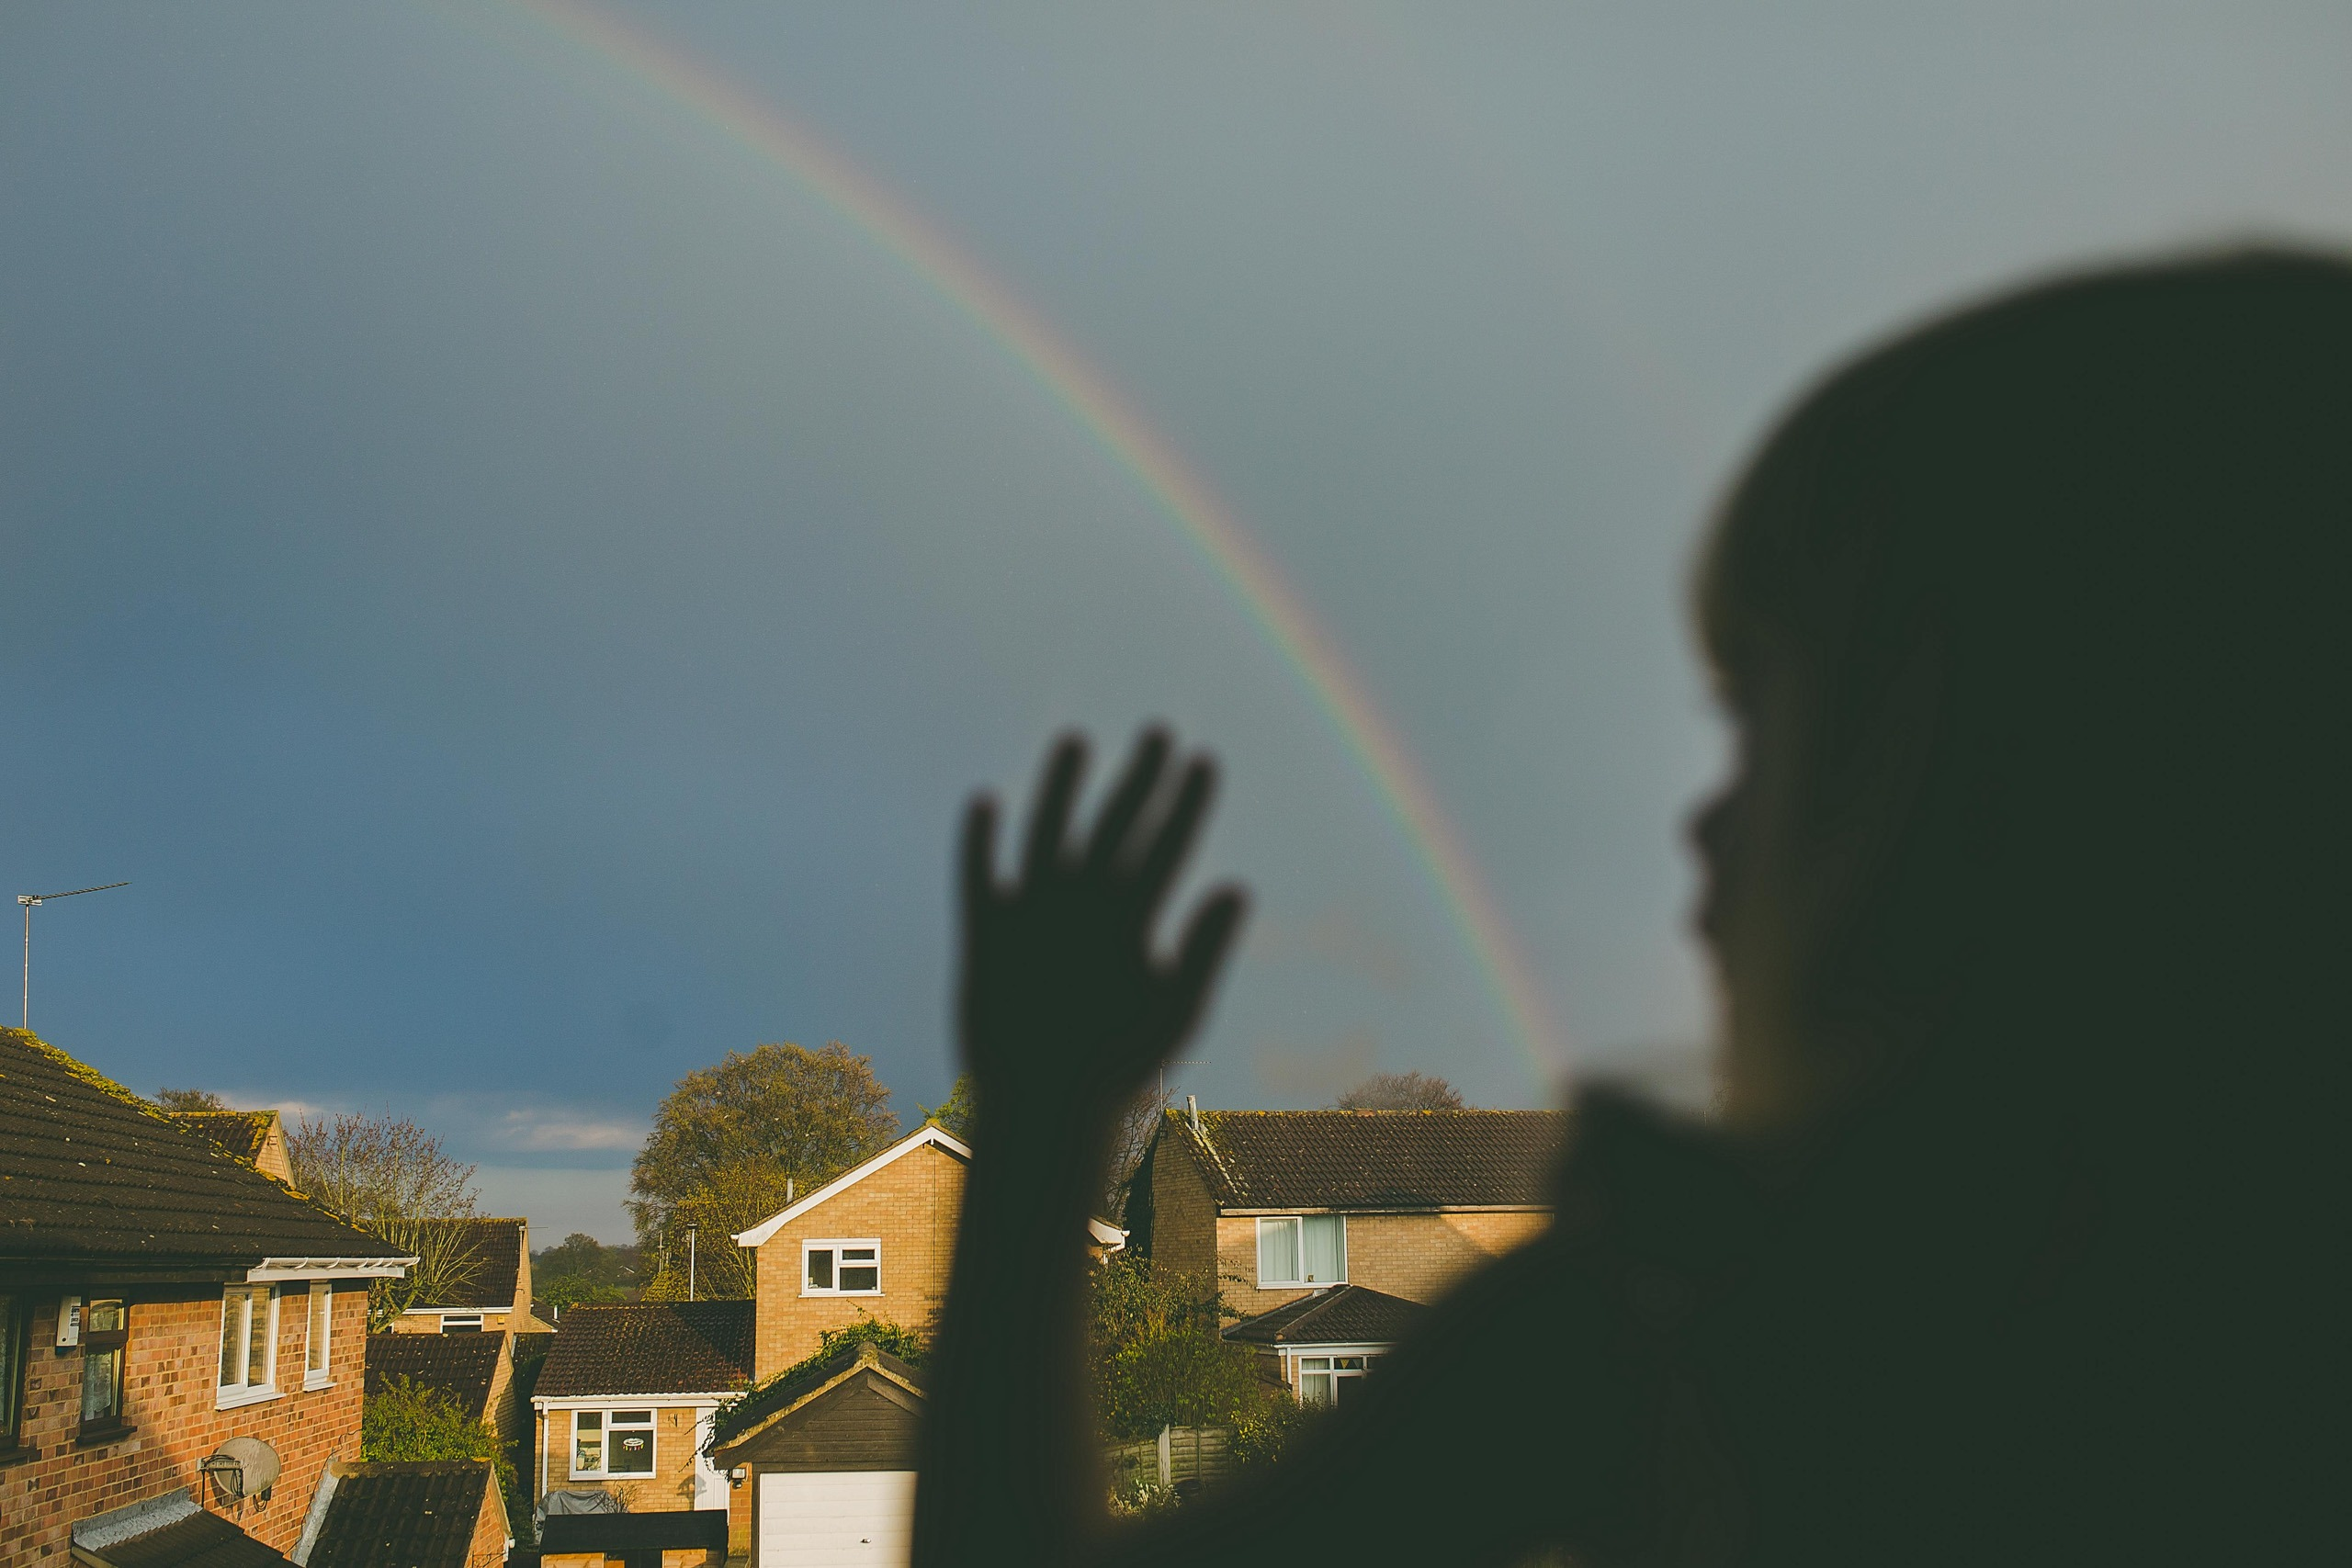 Child watching a rainbow form